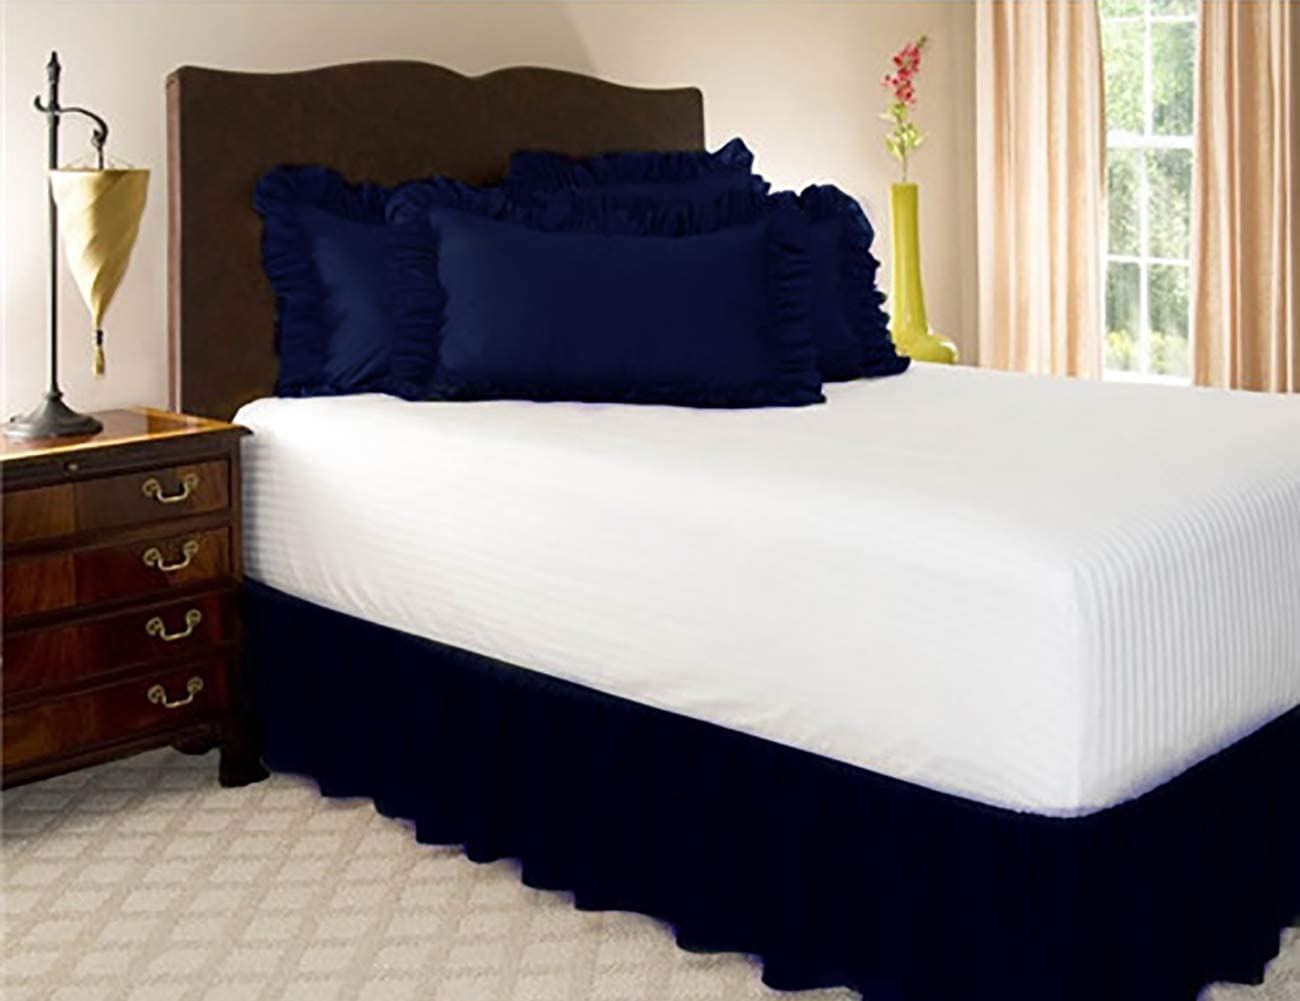 ShiyiUP Bed Skirts with Solid Color Ruffle Wrap Around The Bed